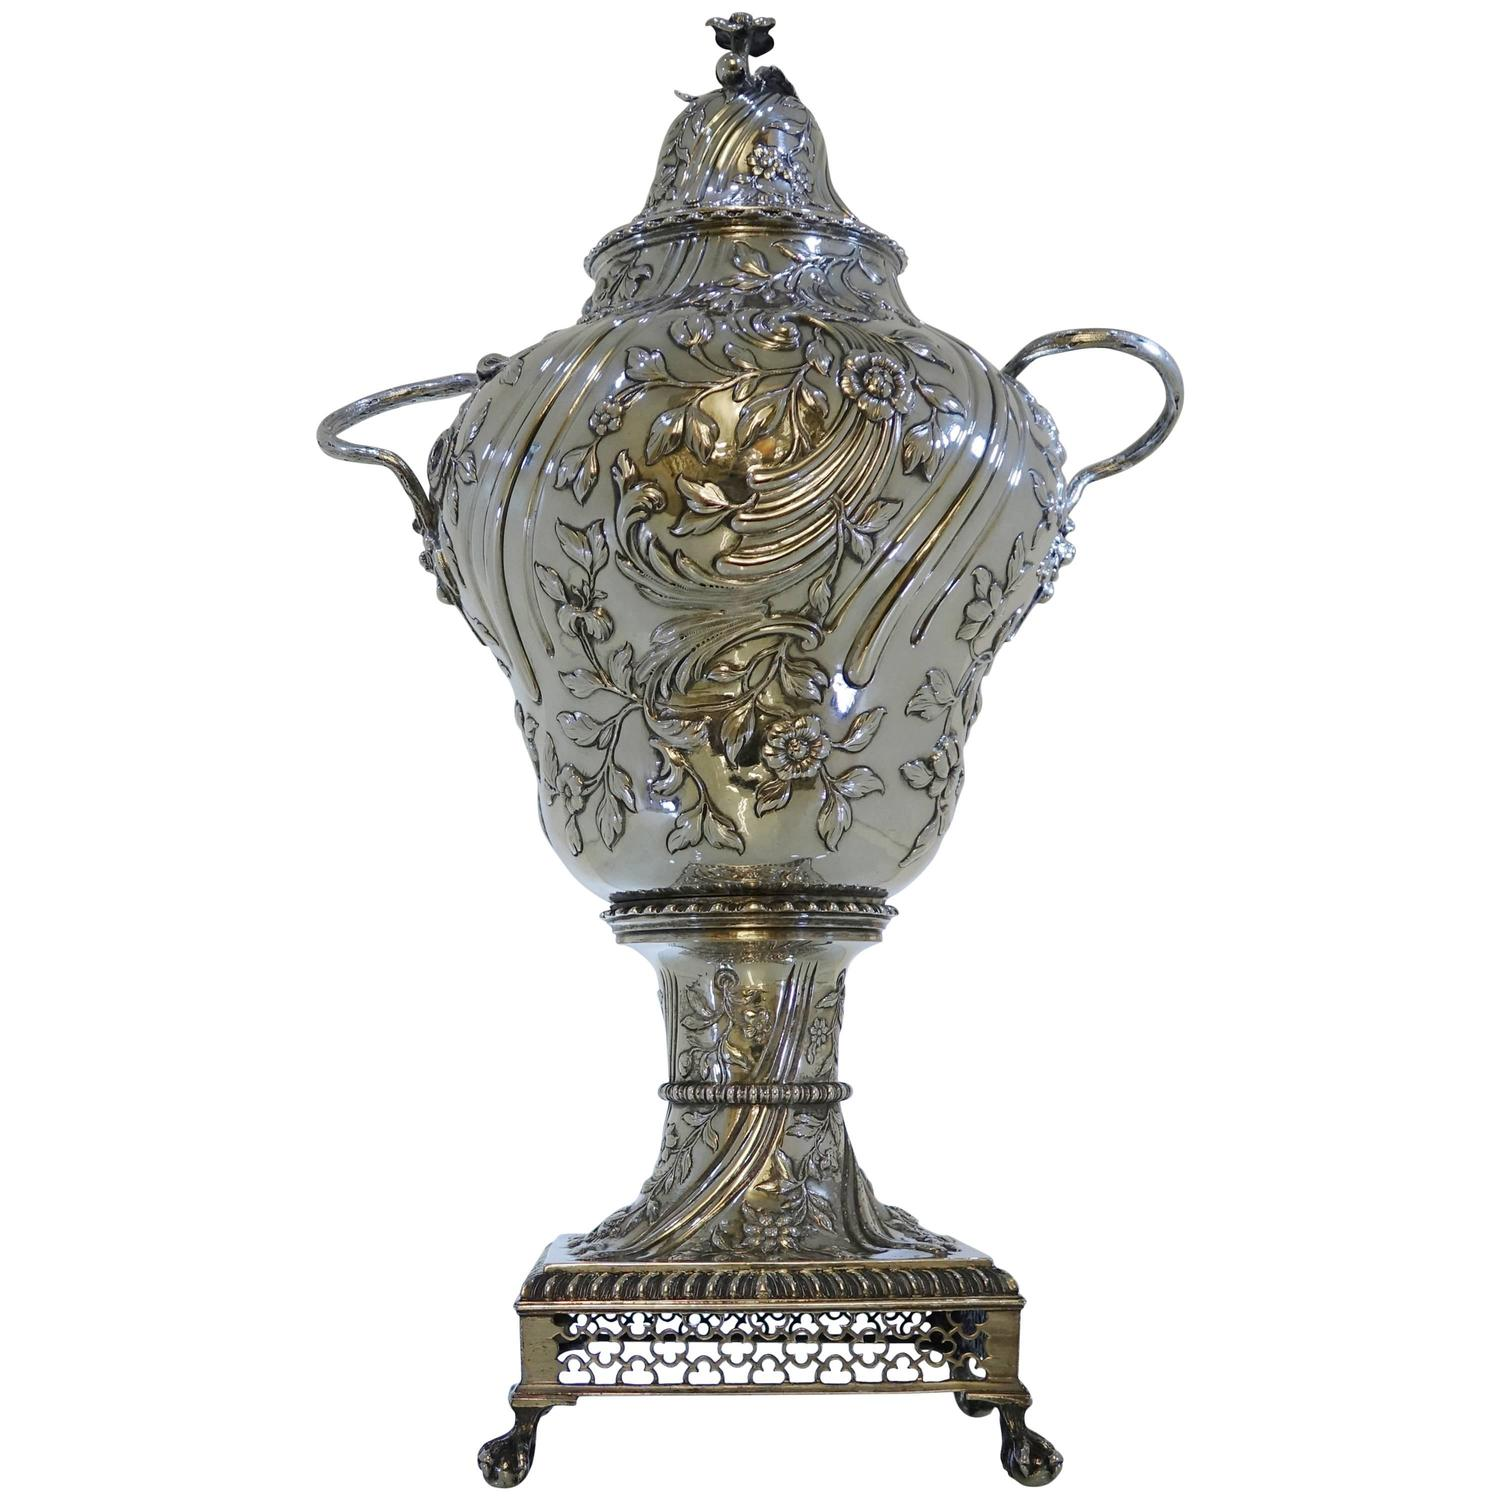 George Iii Silver Tea Urn London 1763 By Charles Wright